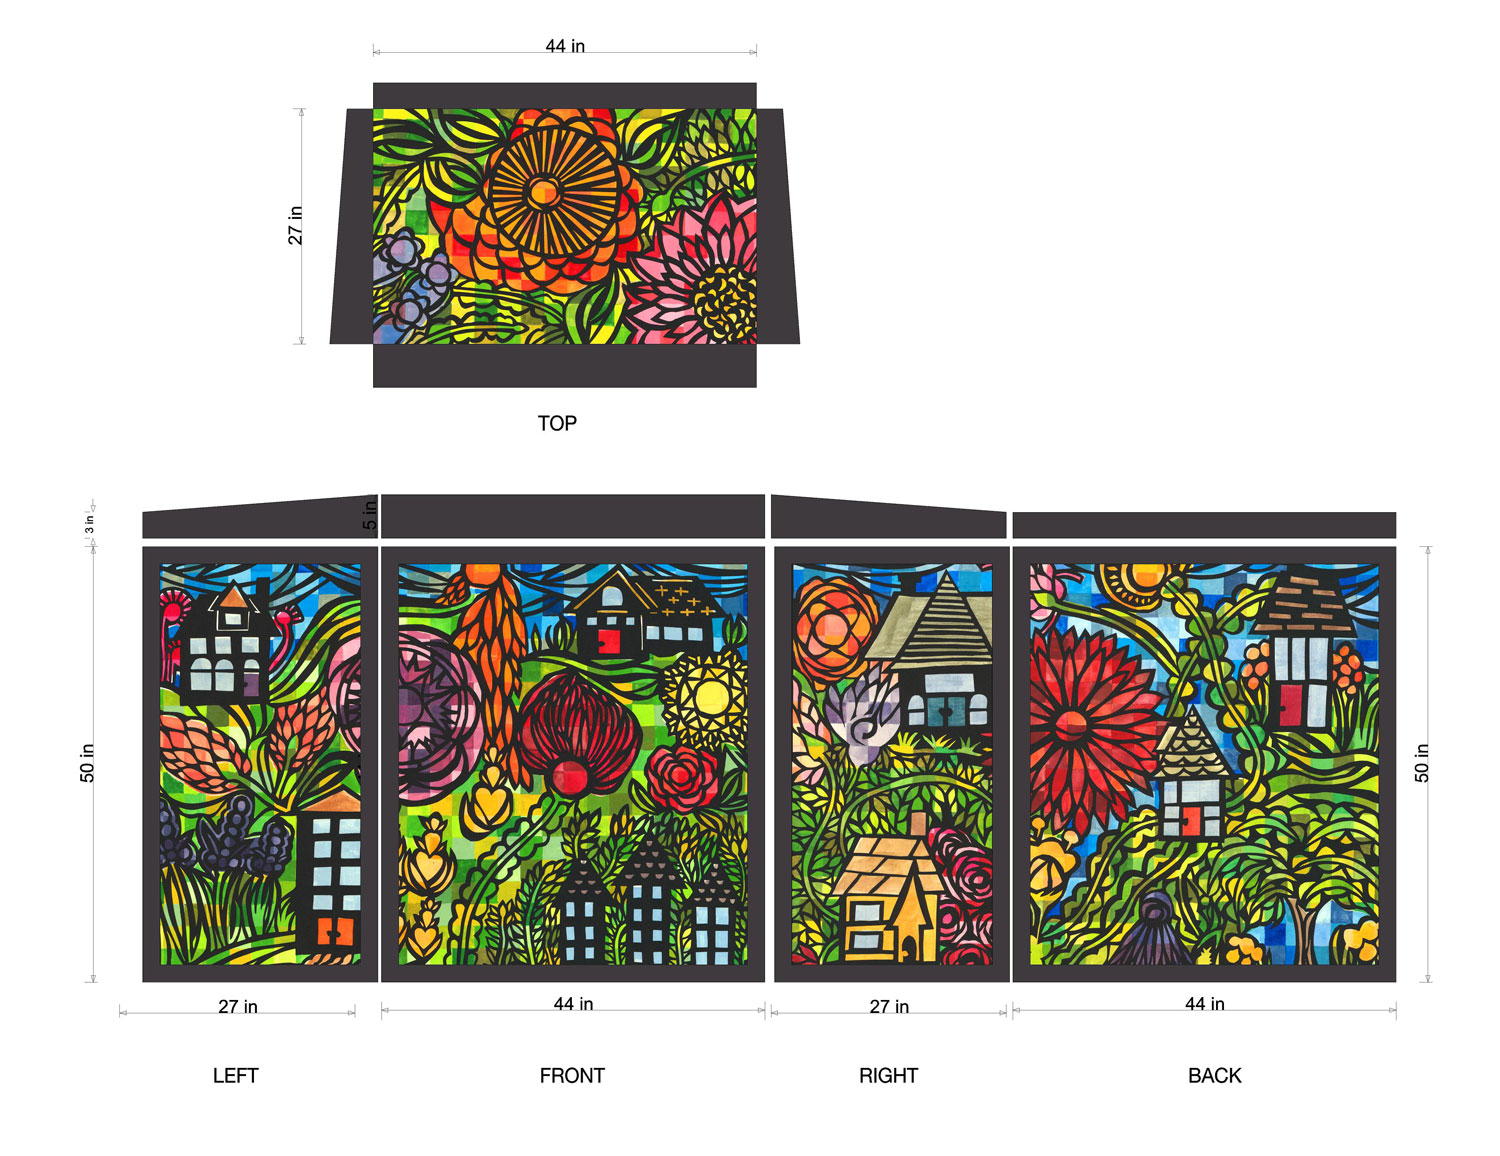 Neighborhood #4 in layout design for the Traffic Box wrap.